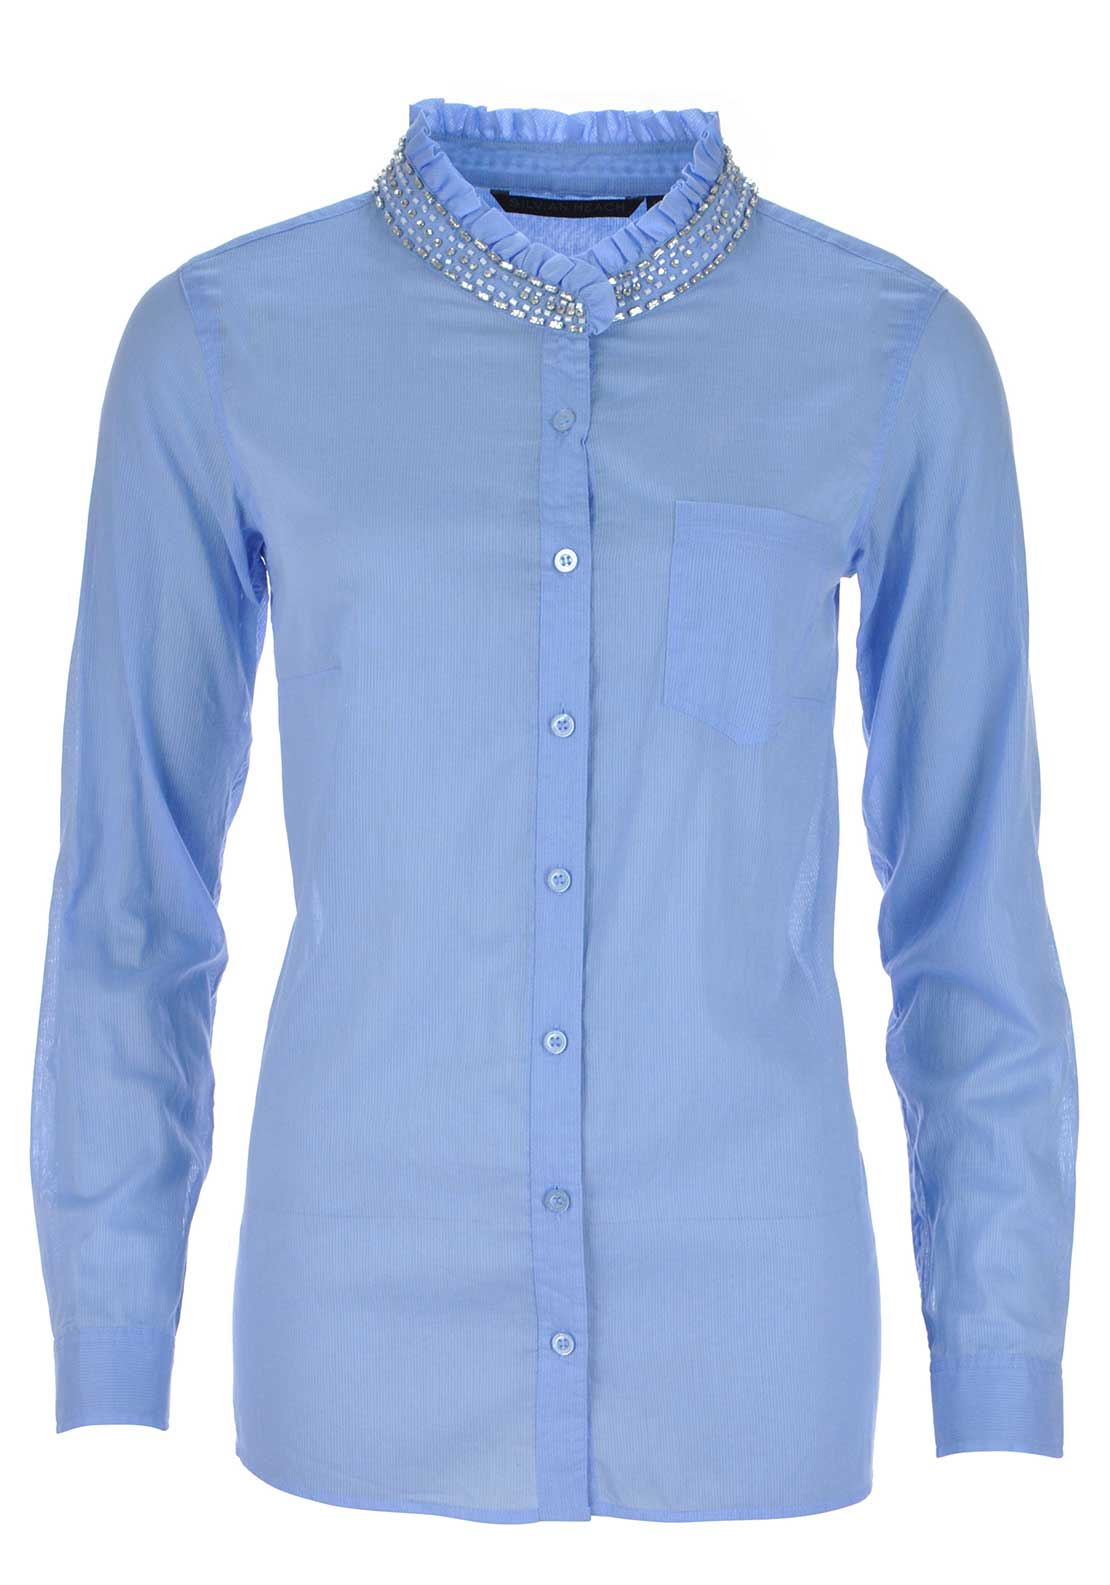 Silvian Heach Semi Sheer Diamante Embellished Shirt, Blue